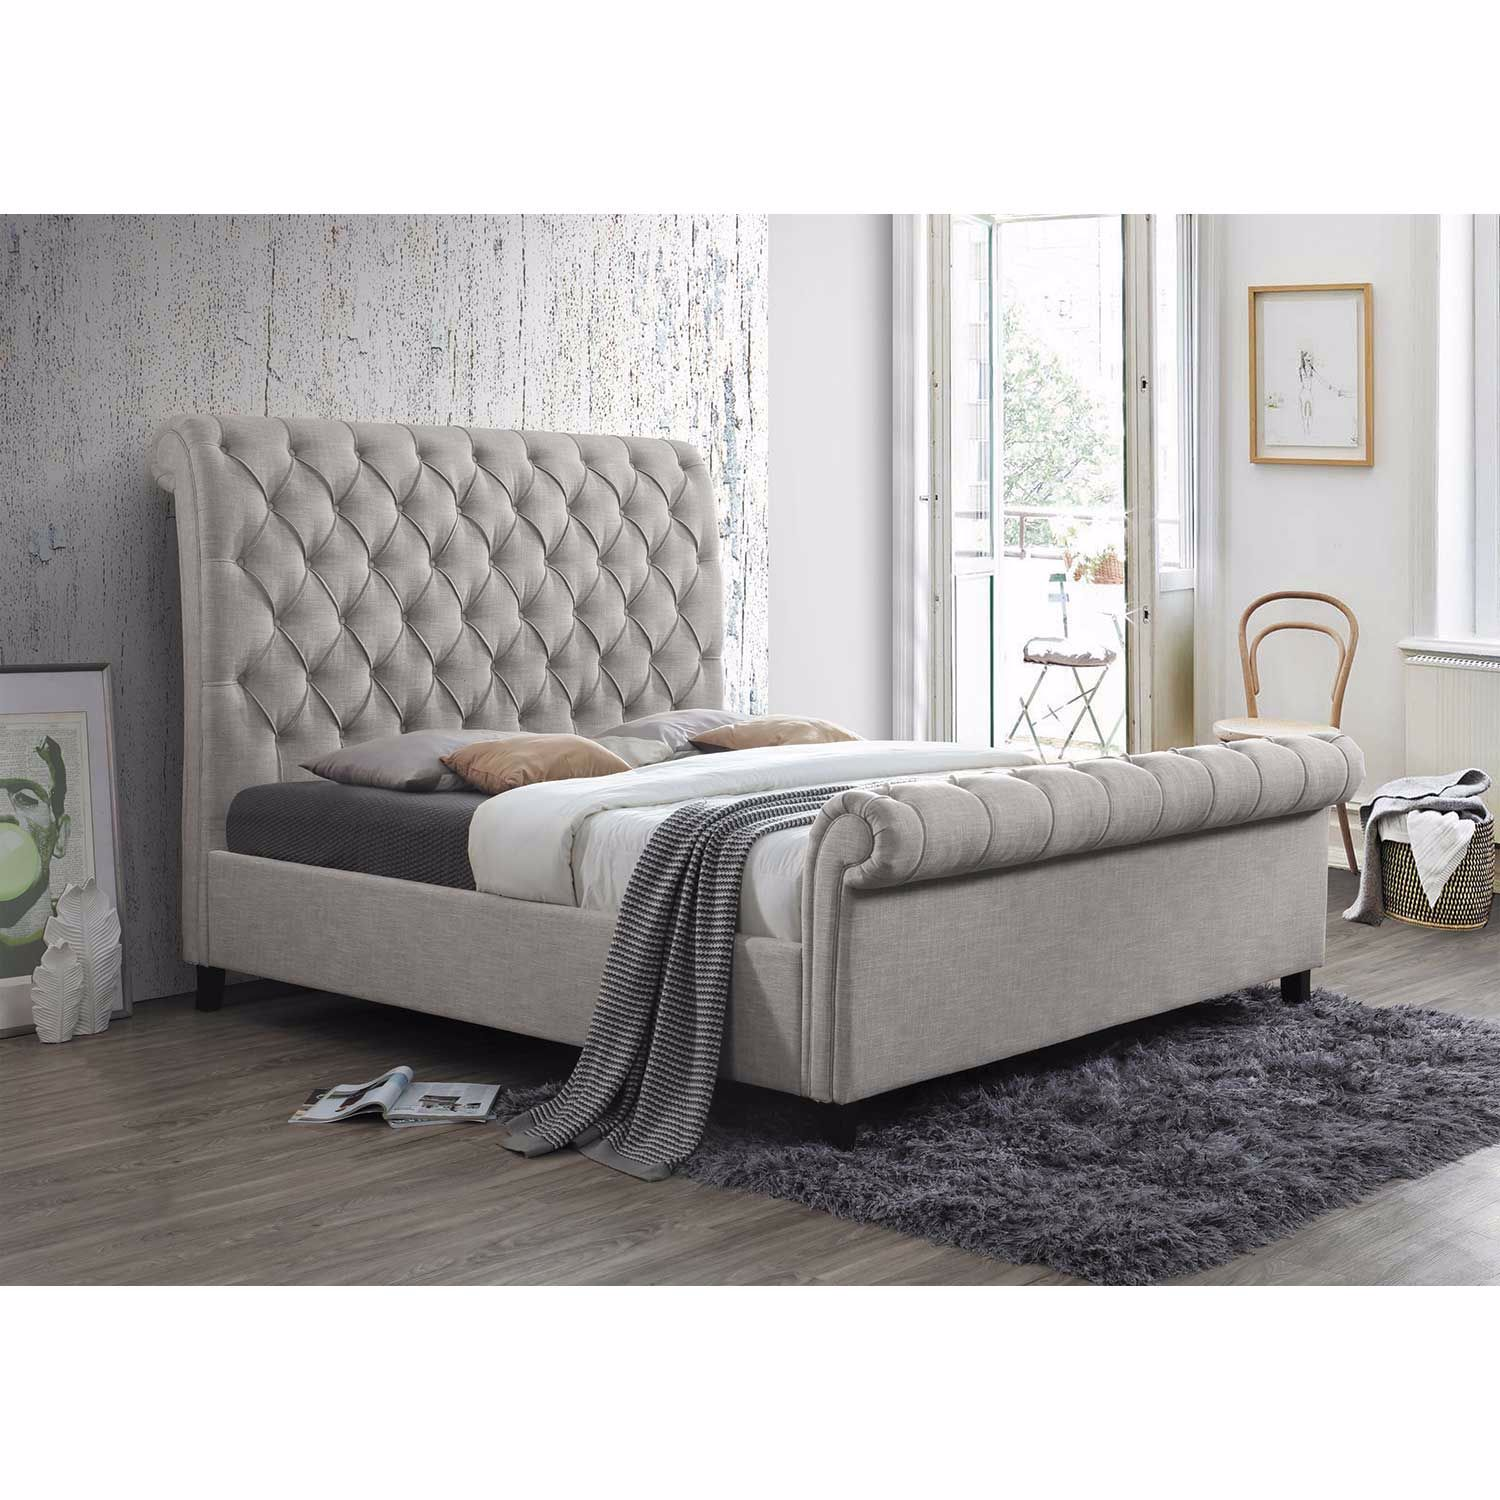 Kate Upholstered King Bed 5103 Khb Fb Rl Crown Mark Afw Com